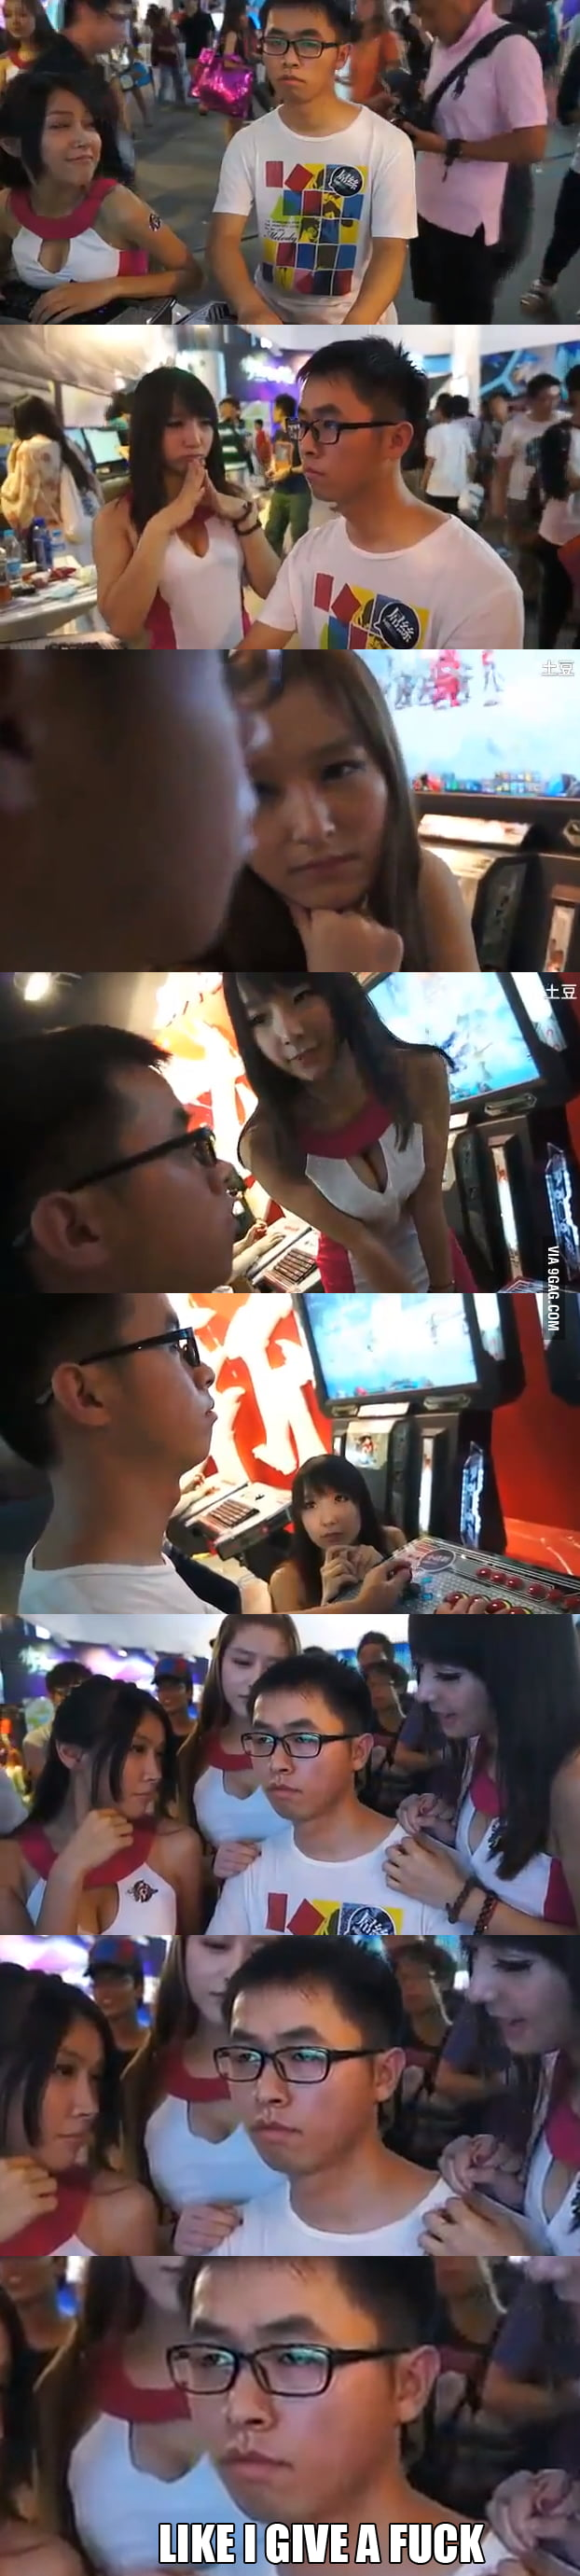 Gamer concentration: Asian.